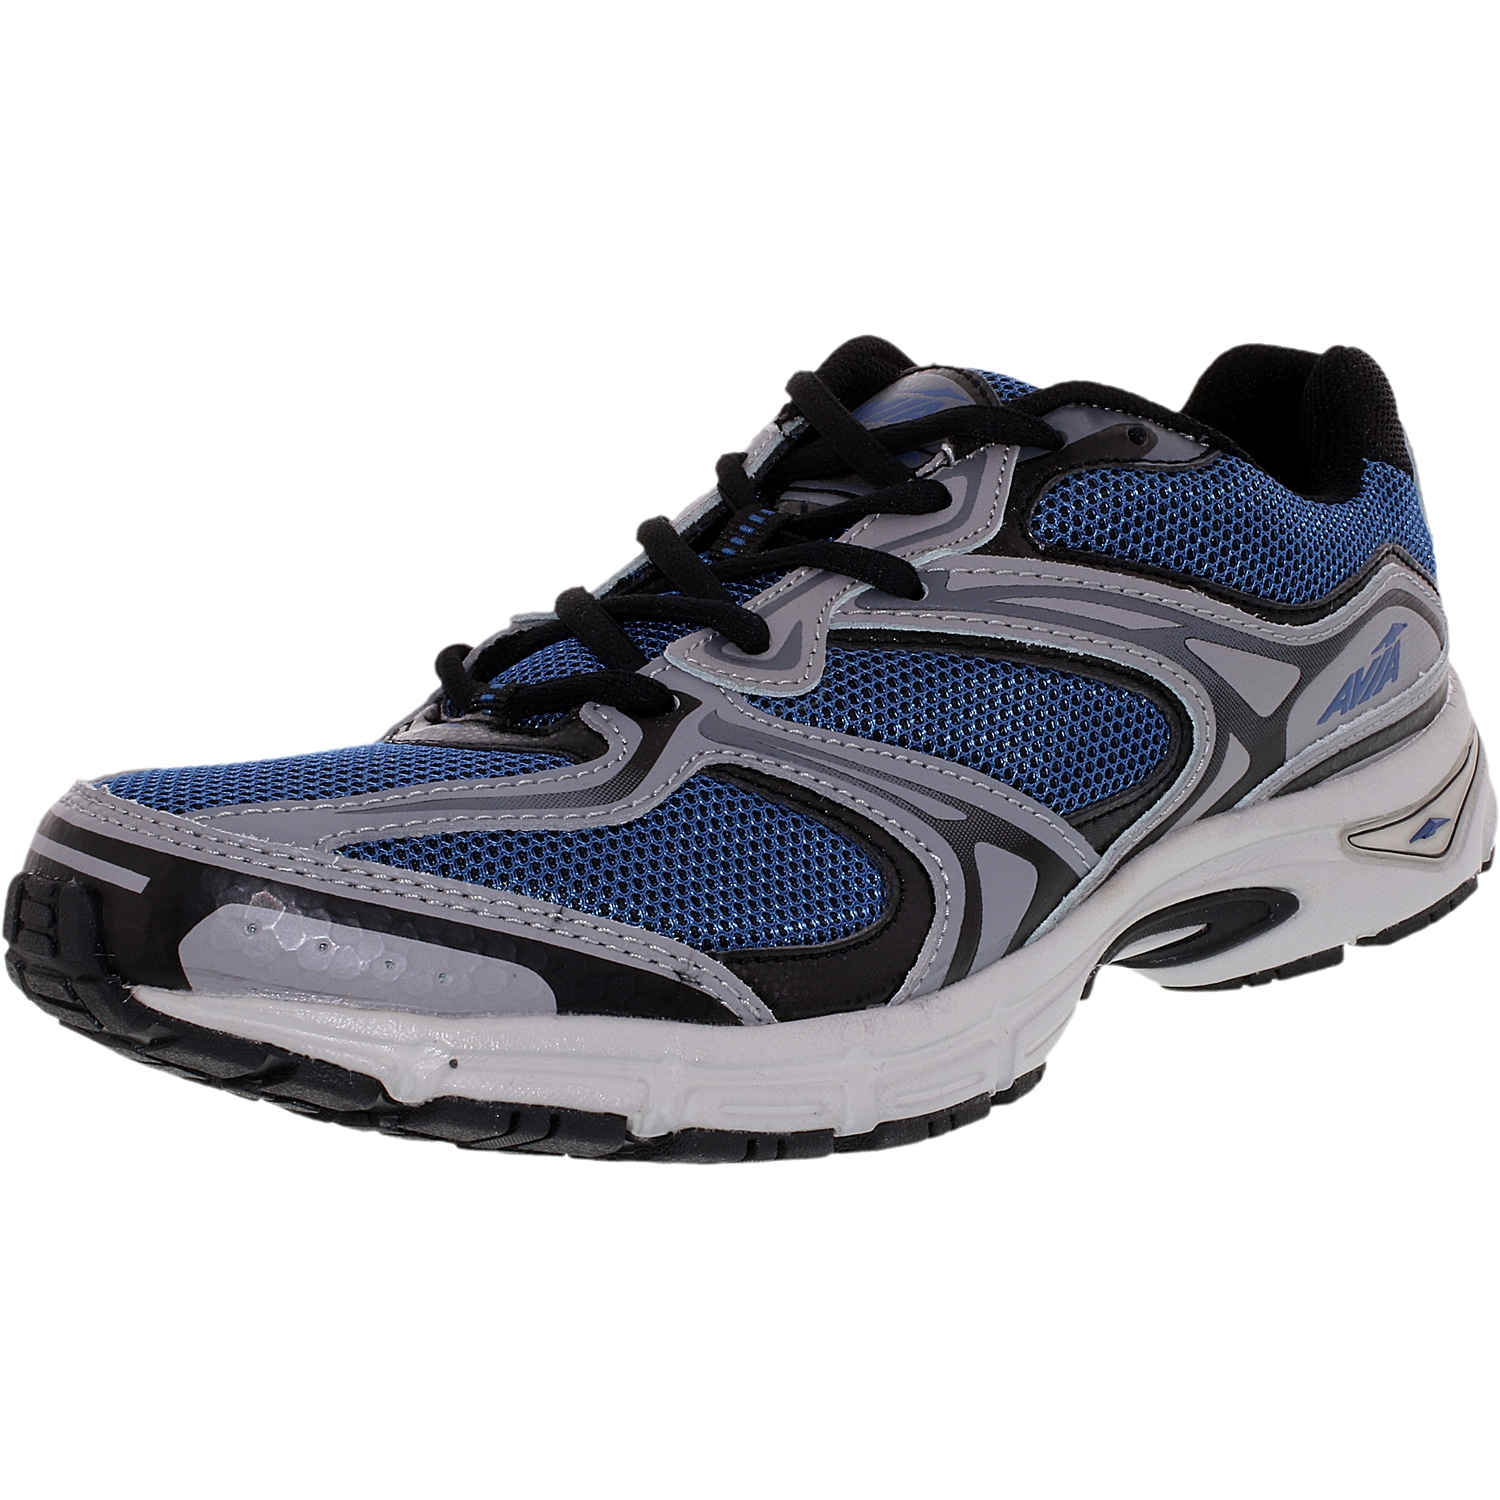 Avia Men's Endeavor Navy Black Grey Ankle-High Cross Trainer Shoe 9.5W by Avia